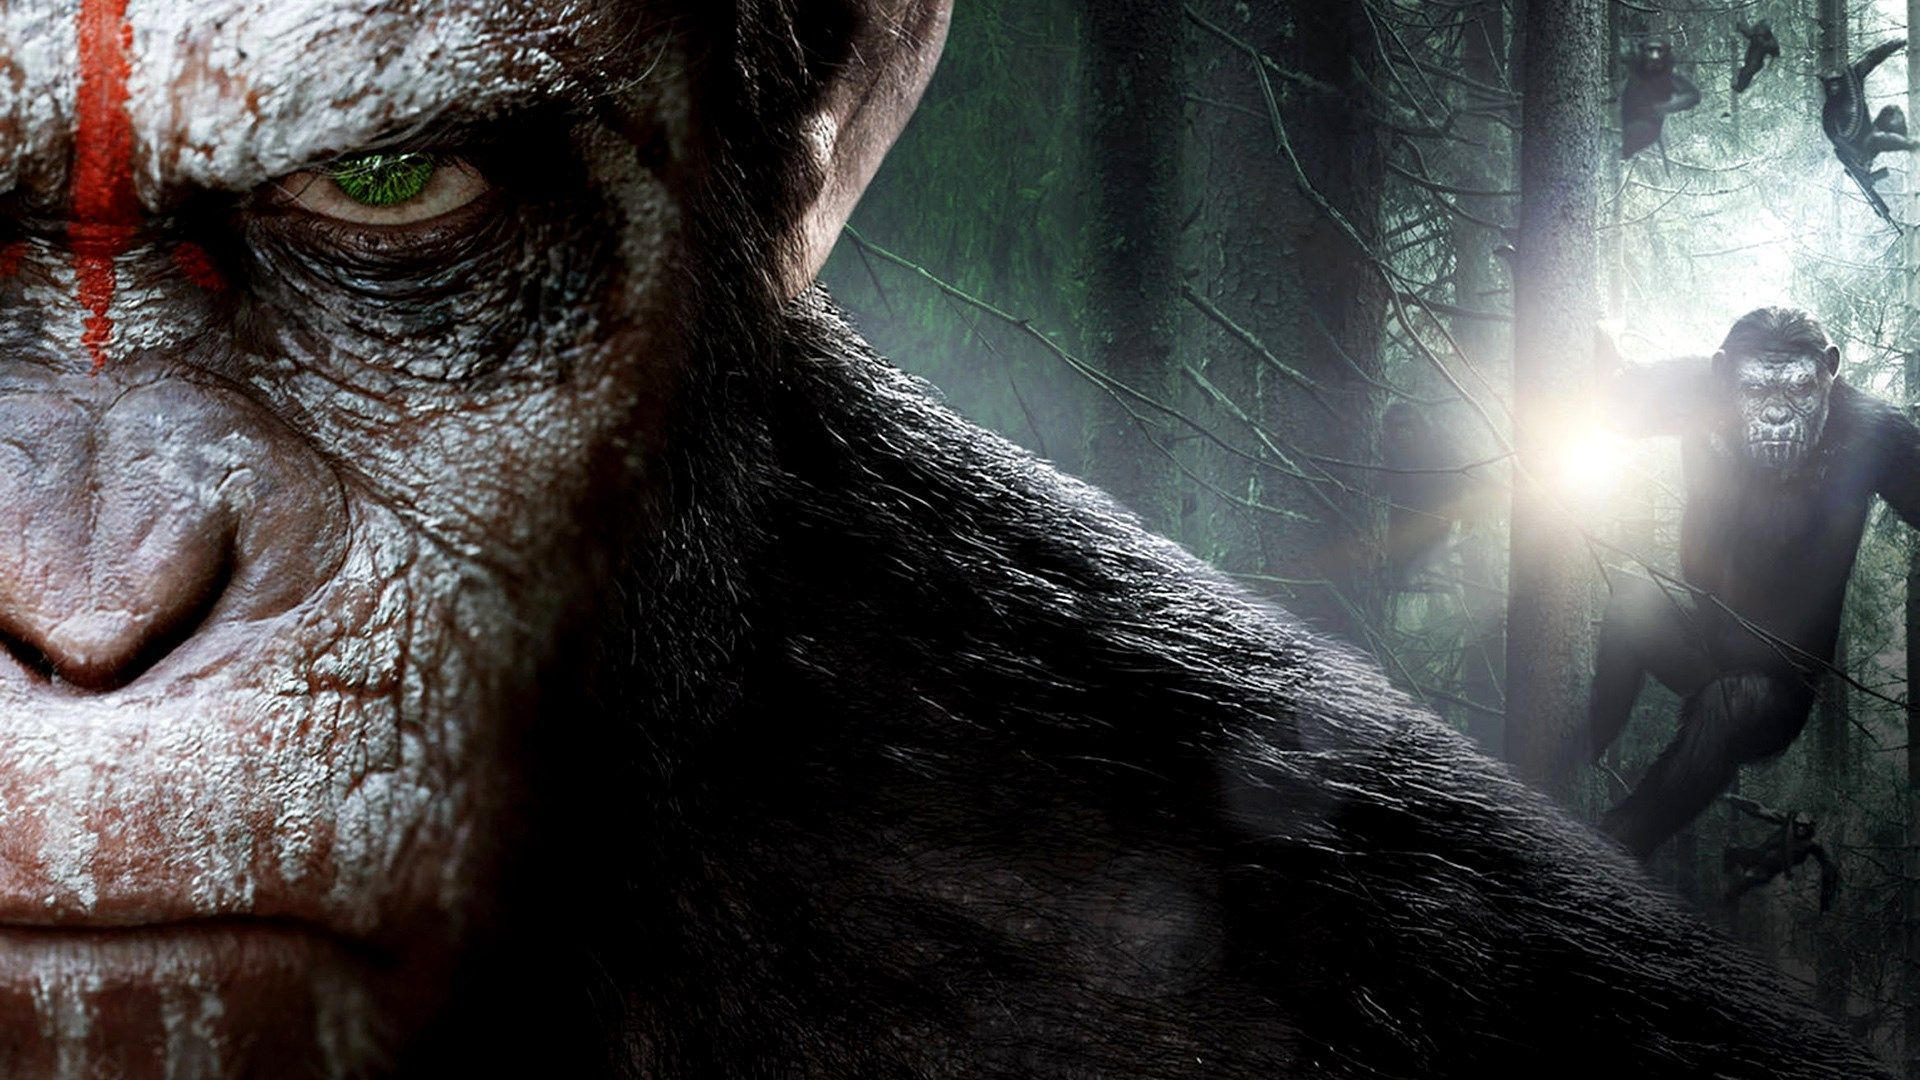 Planet Of The Apes Wallpapers Top Free Planet Of The Apes